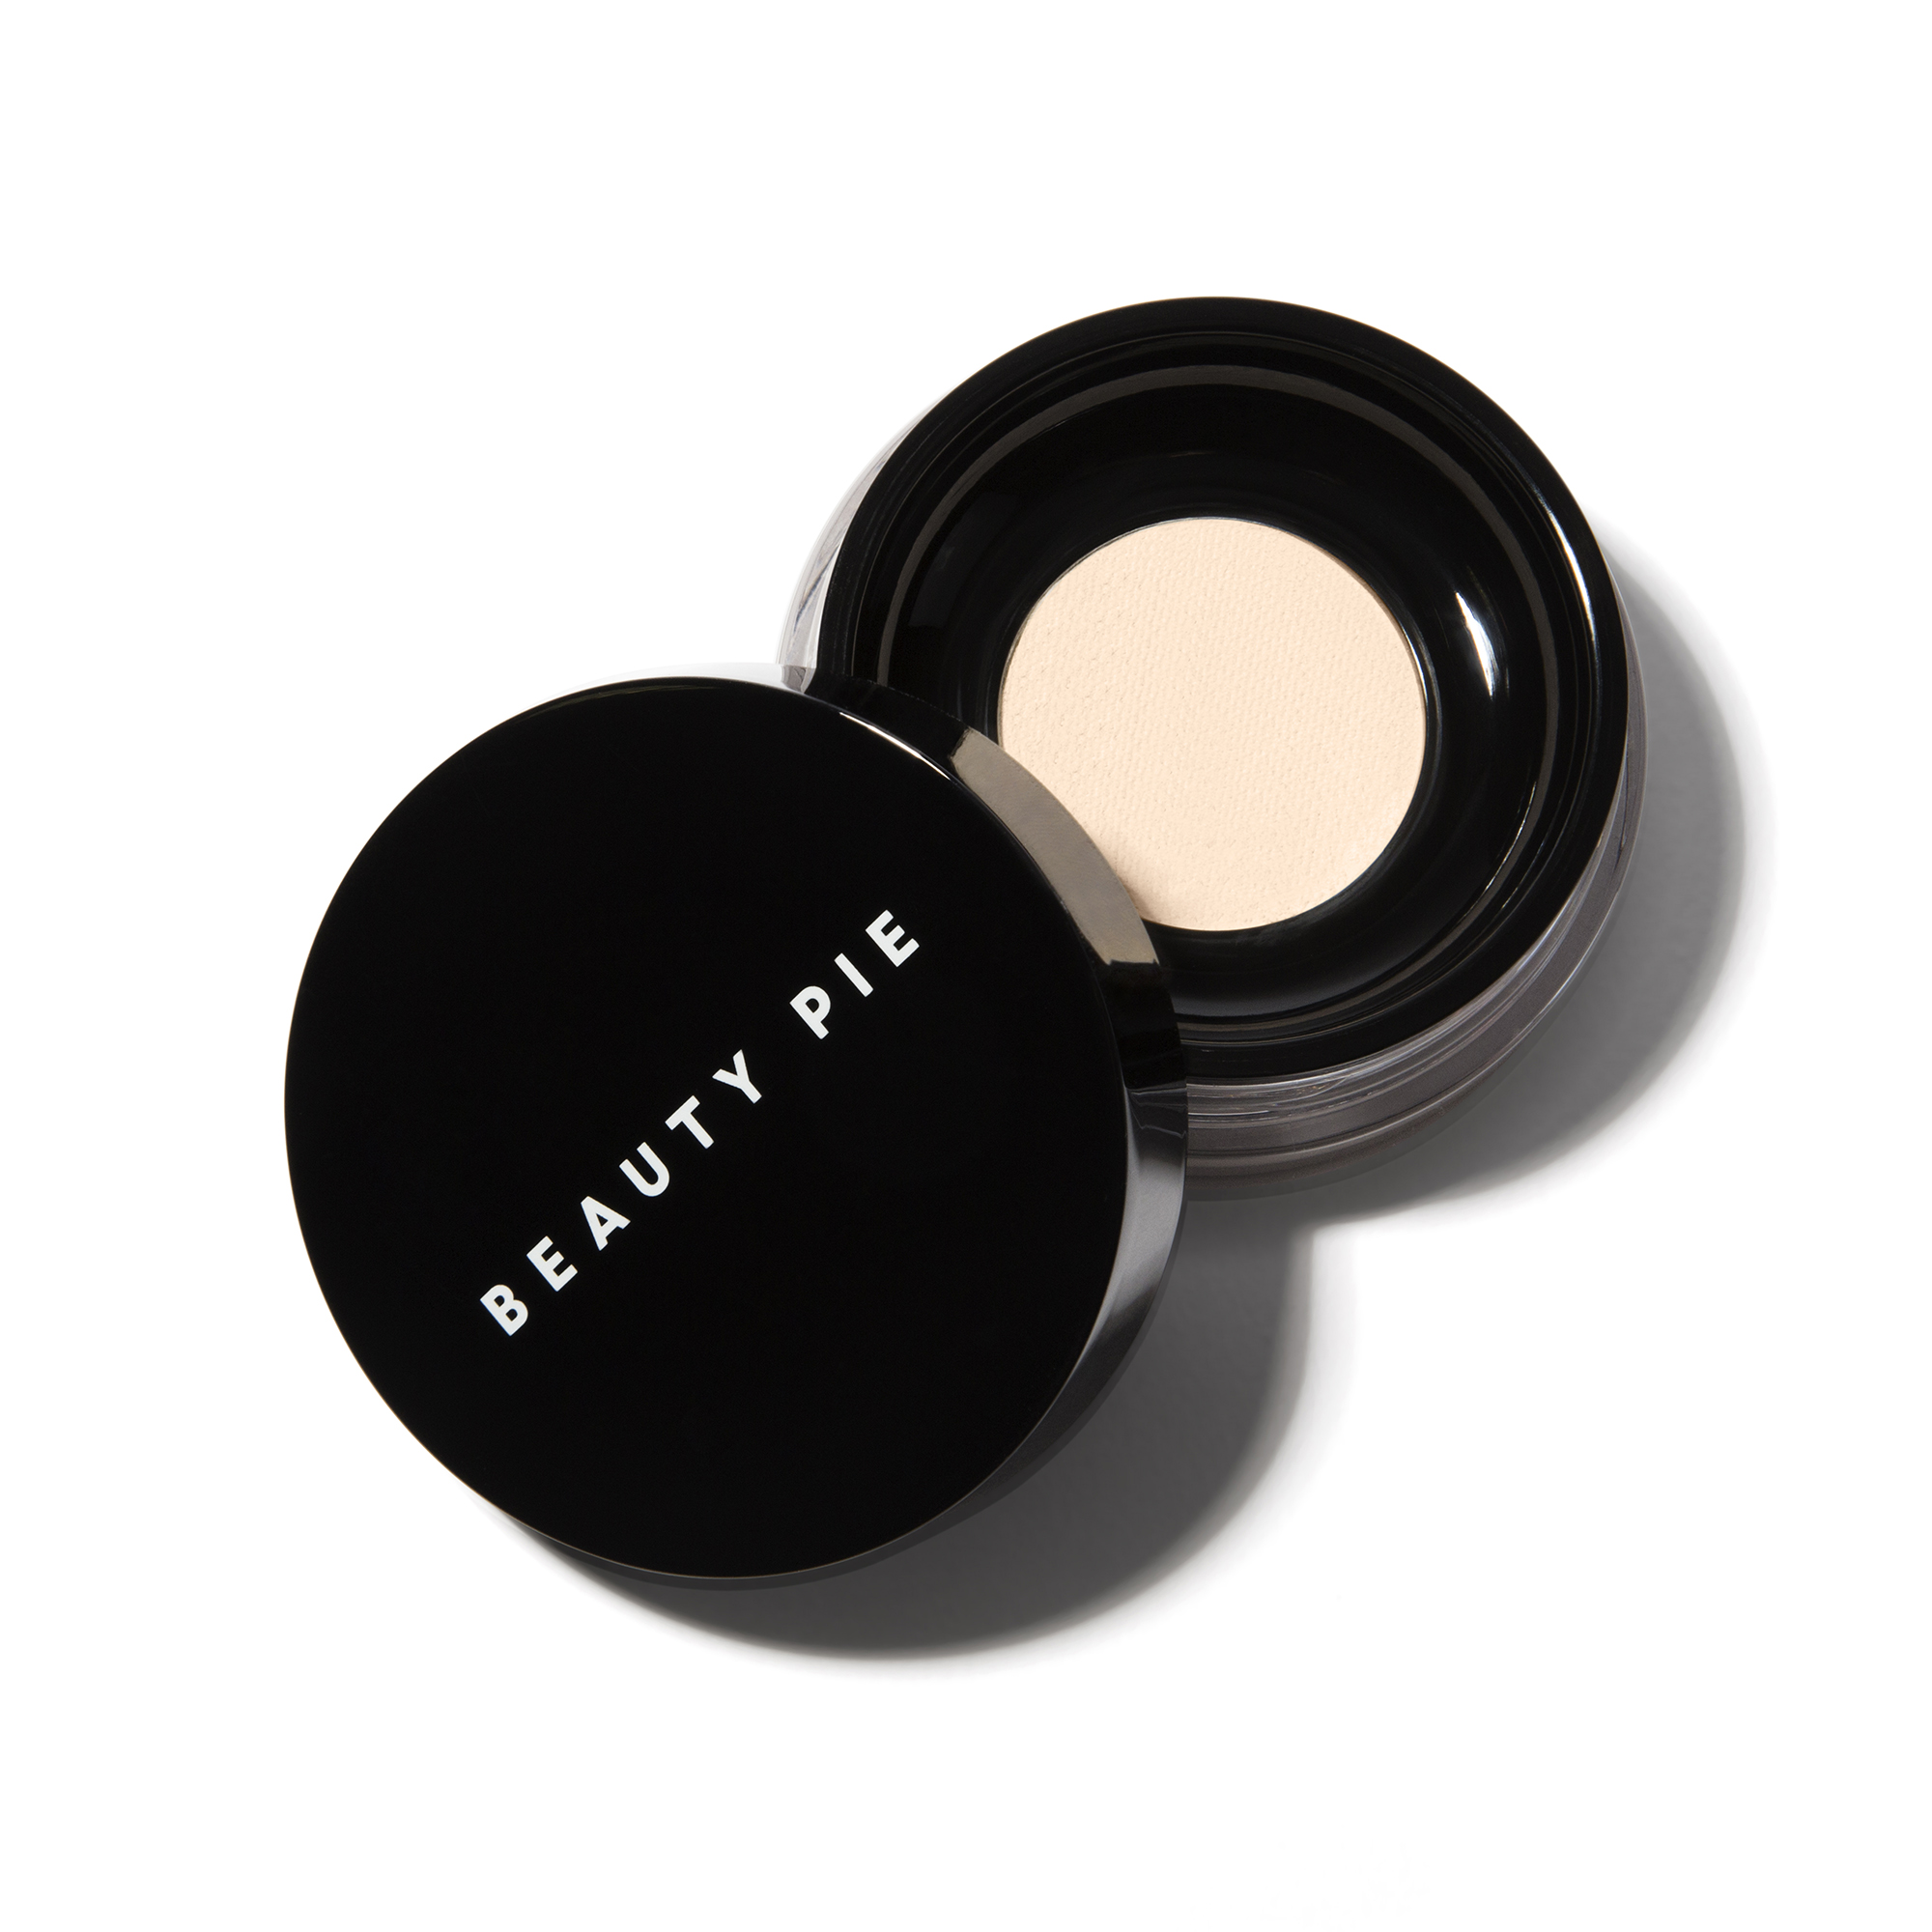 Super Translucent Loose Setting Powder in See-Through by Beauty Pie